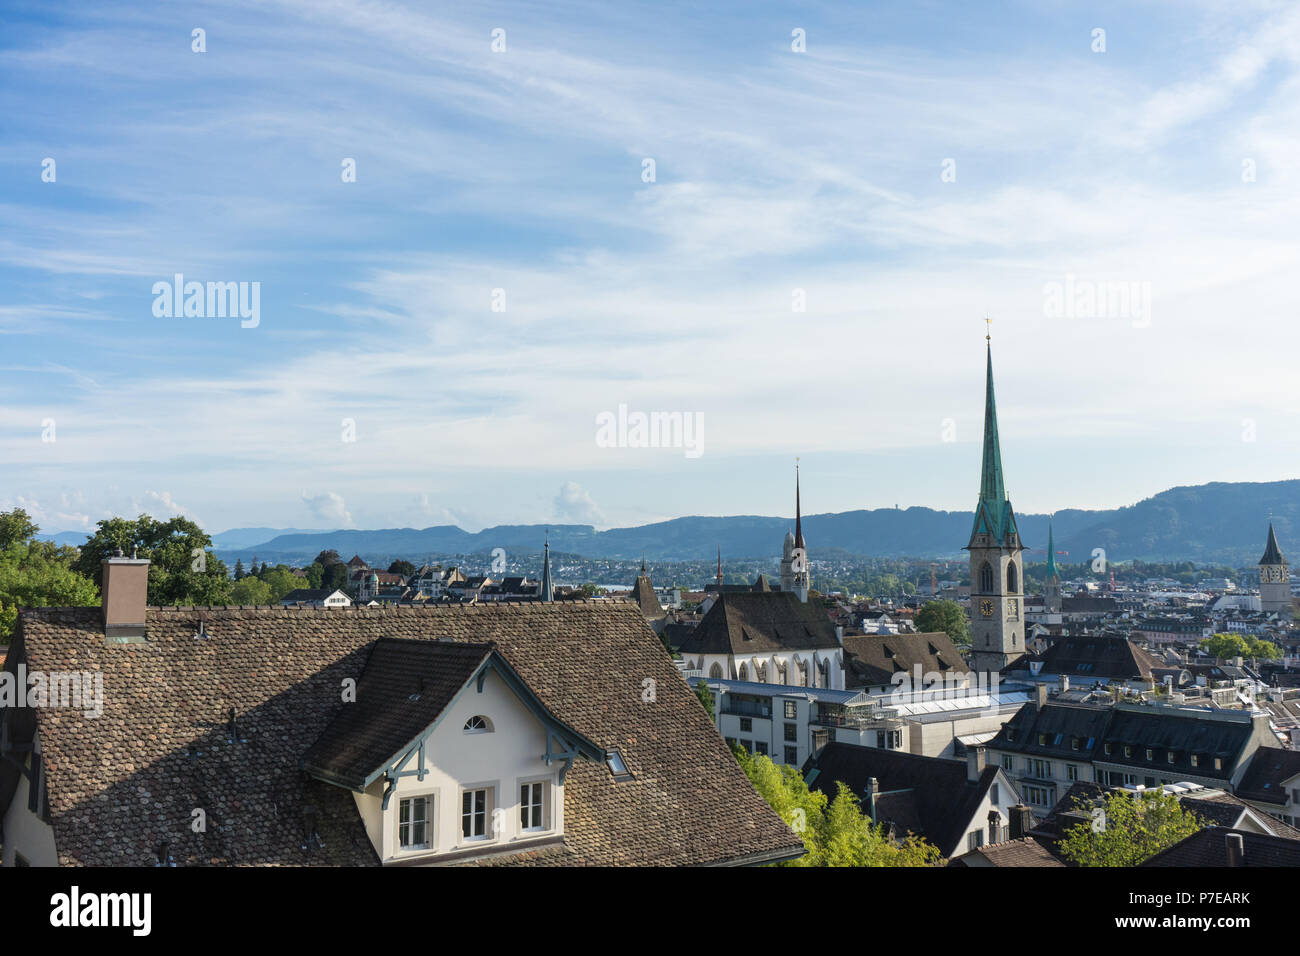 Scenery of old town of Zurich, Switzerland from University hill on a summer day - Stock Image